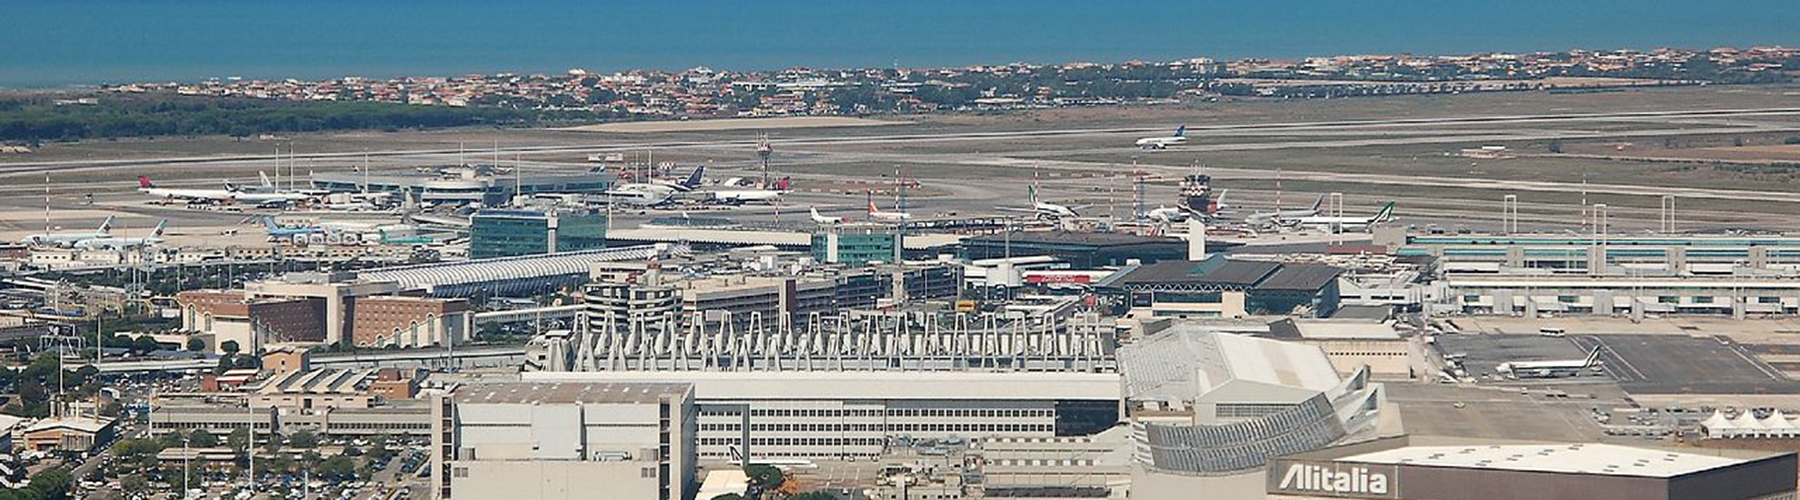 Rome – Camping close to Leonardo da Vinci-Fiumicino Airport. Maps of Rome, Photos and Reviews for each camping in Rome.